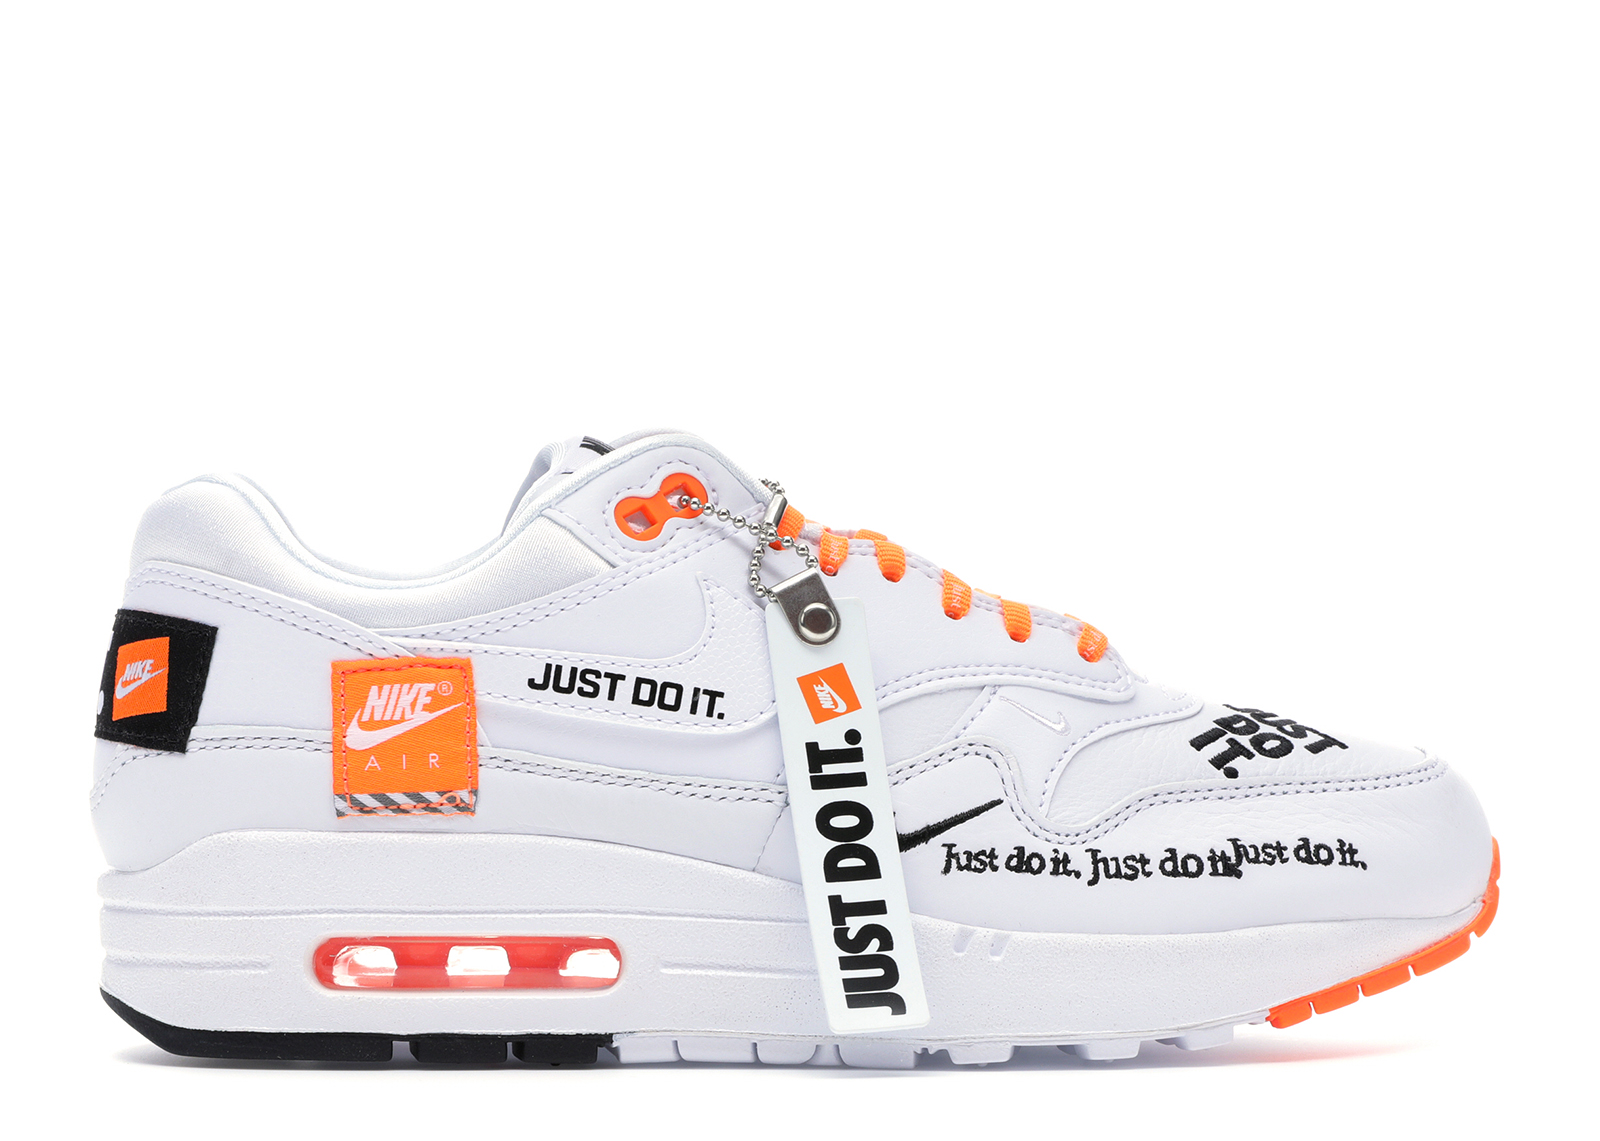 Nike Do Air Max 1 Just Do It White W